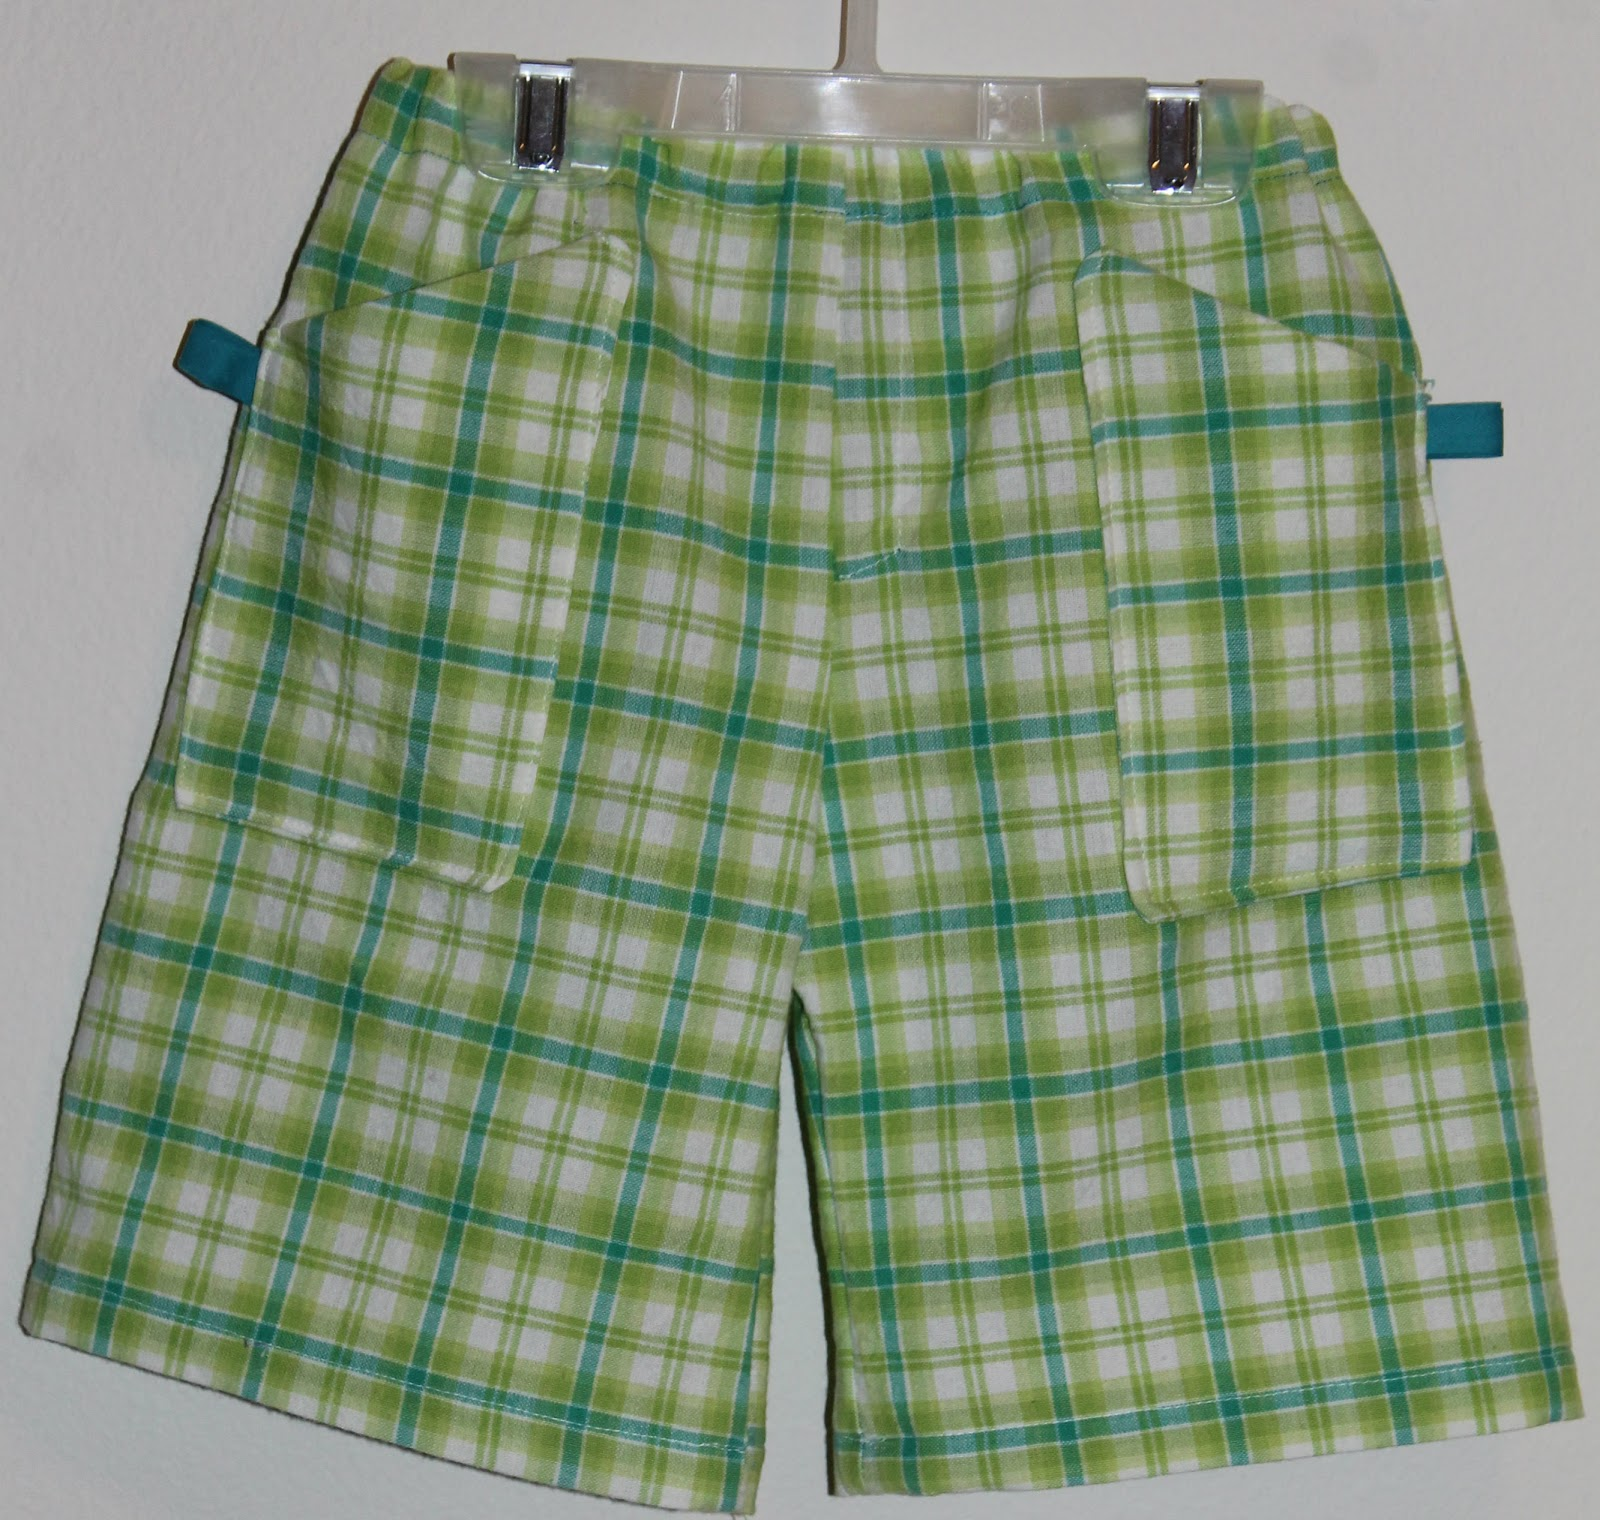 How to sew shorts 4